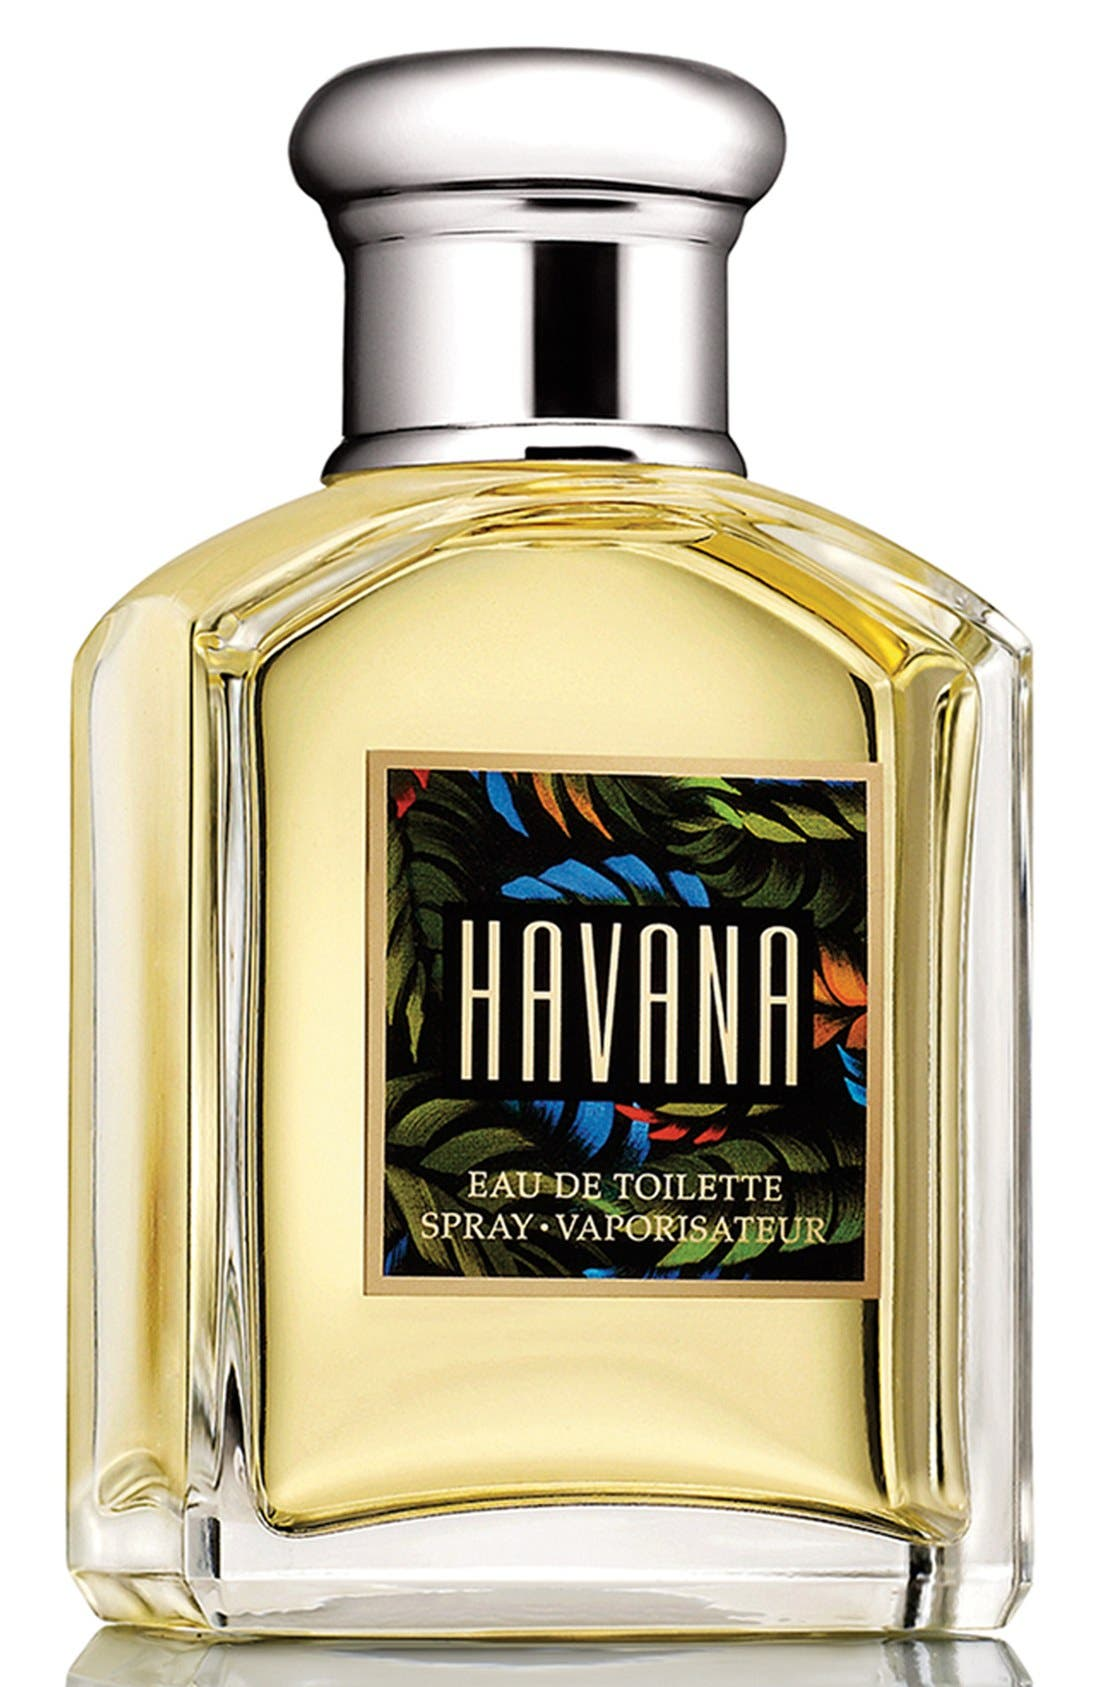 Aramis 'Havana' Eau de Toilette Spray,                             Main thumbnail 1, color,                             000